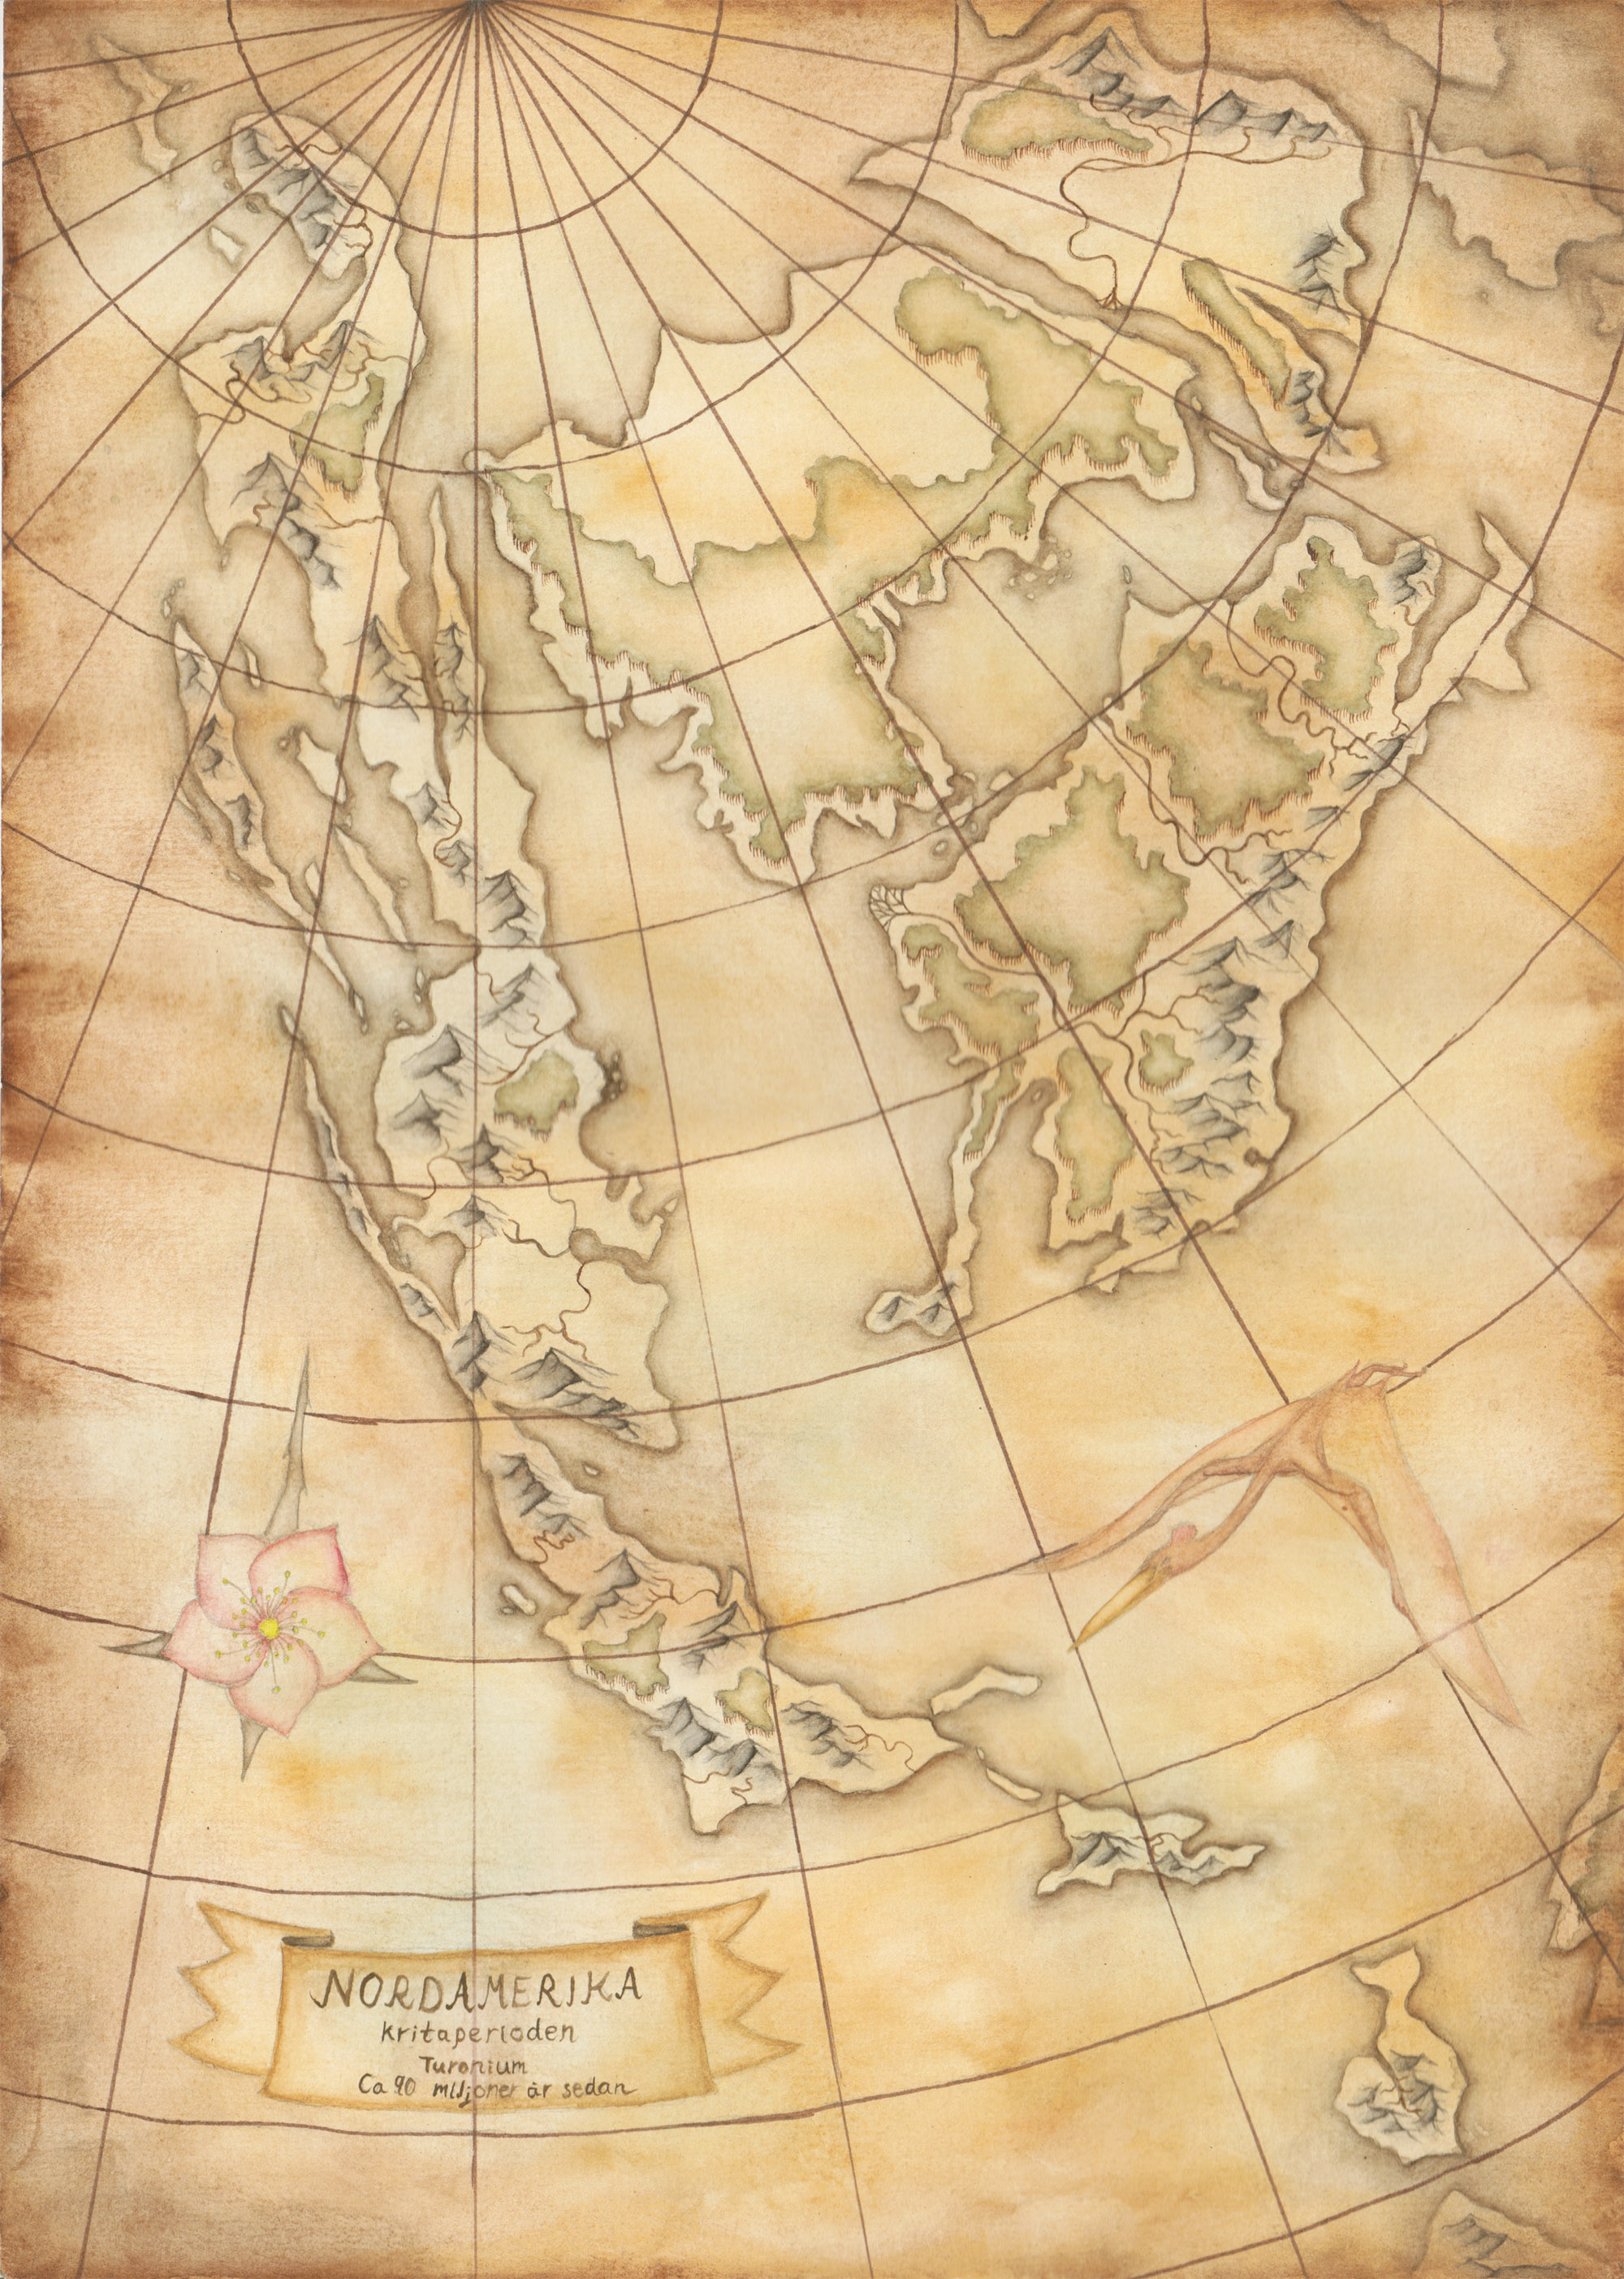 North America, 90 million years ago